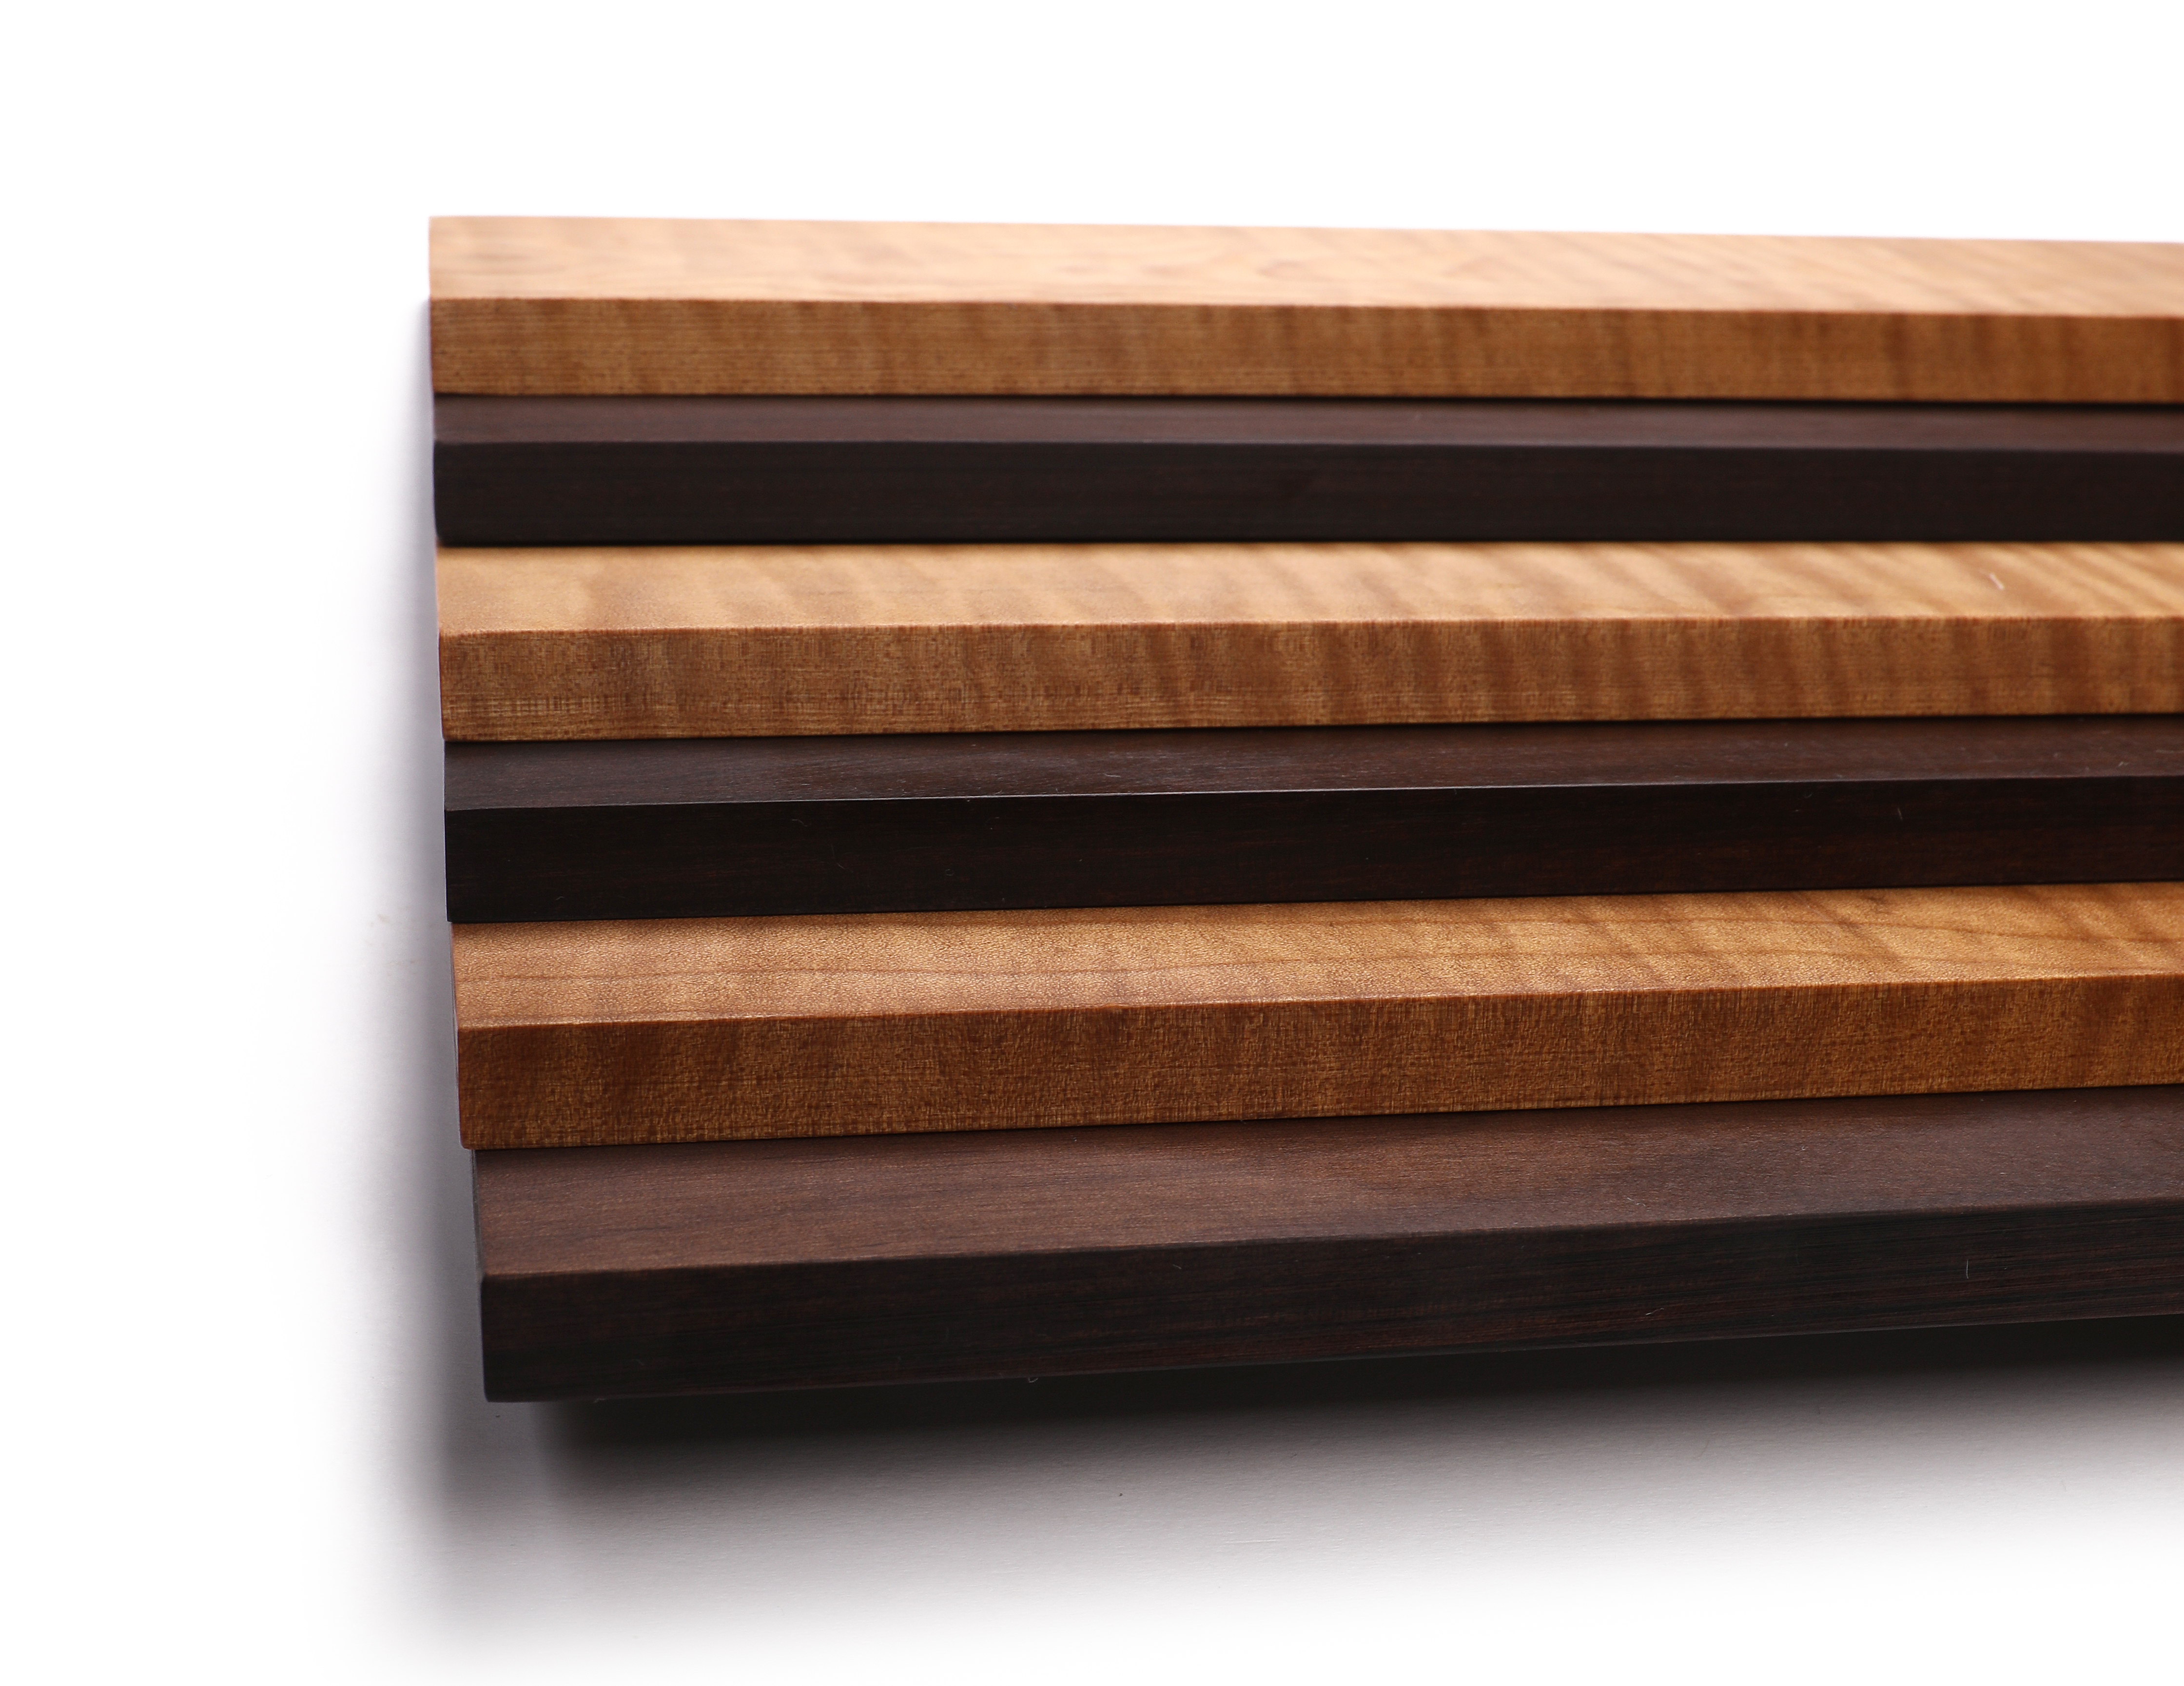 Fretboards from Sonowood flamed maple, maple and walnut